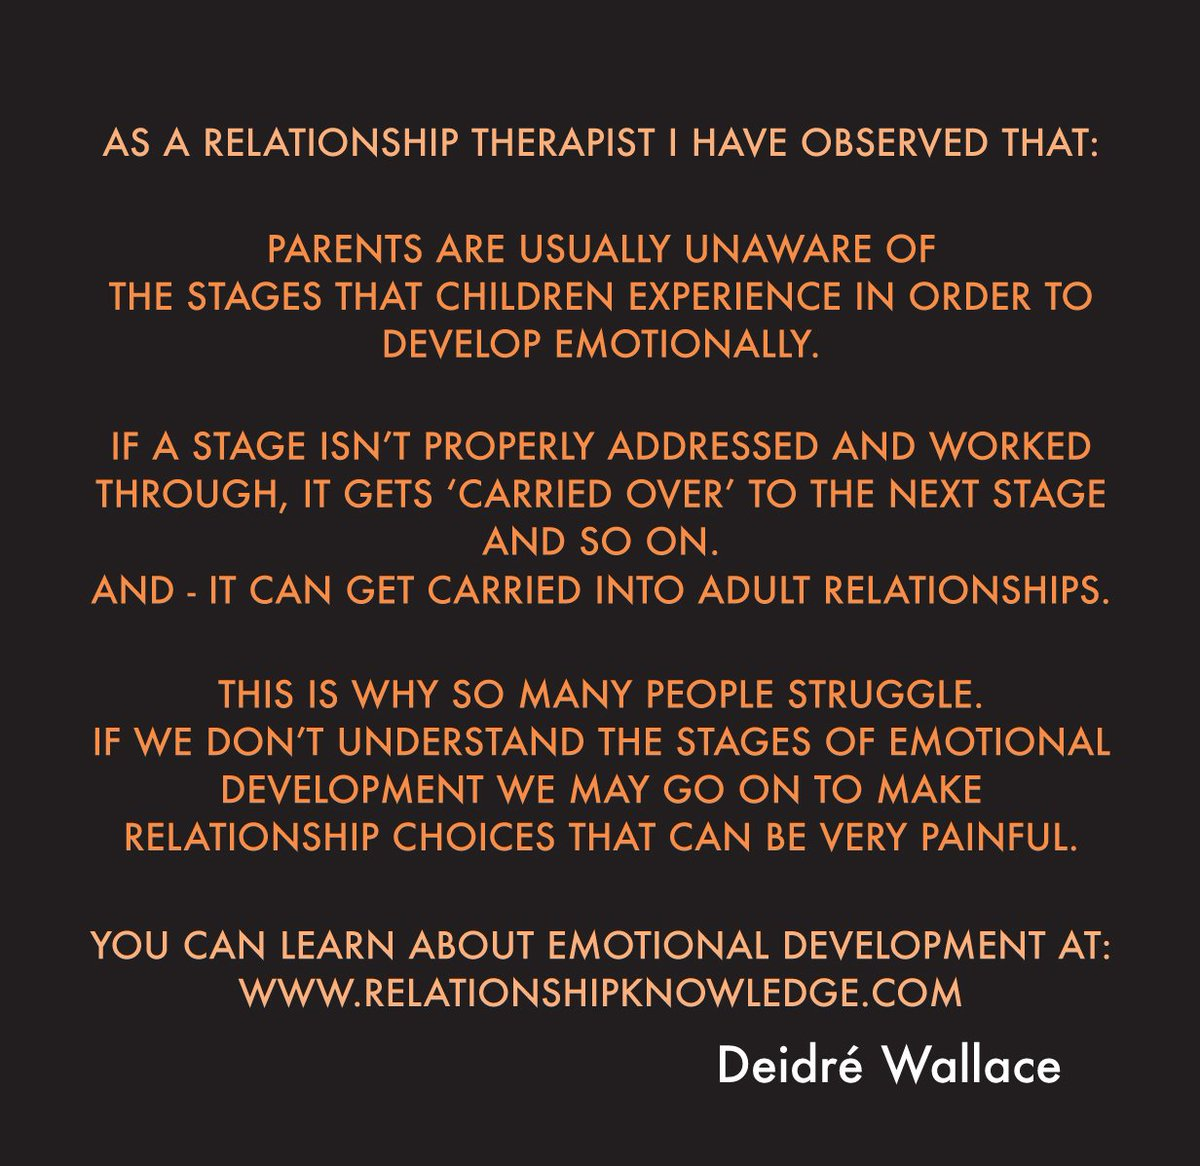 My #relationship observations: https://t.co/MbmOFWALCK #parenting #chi...